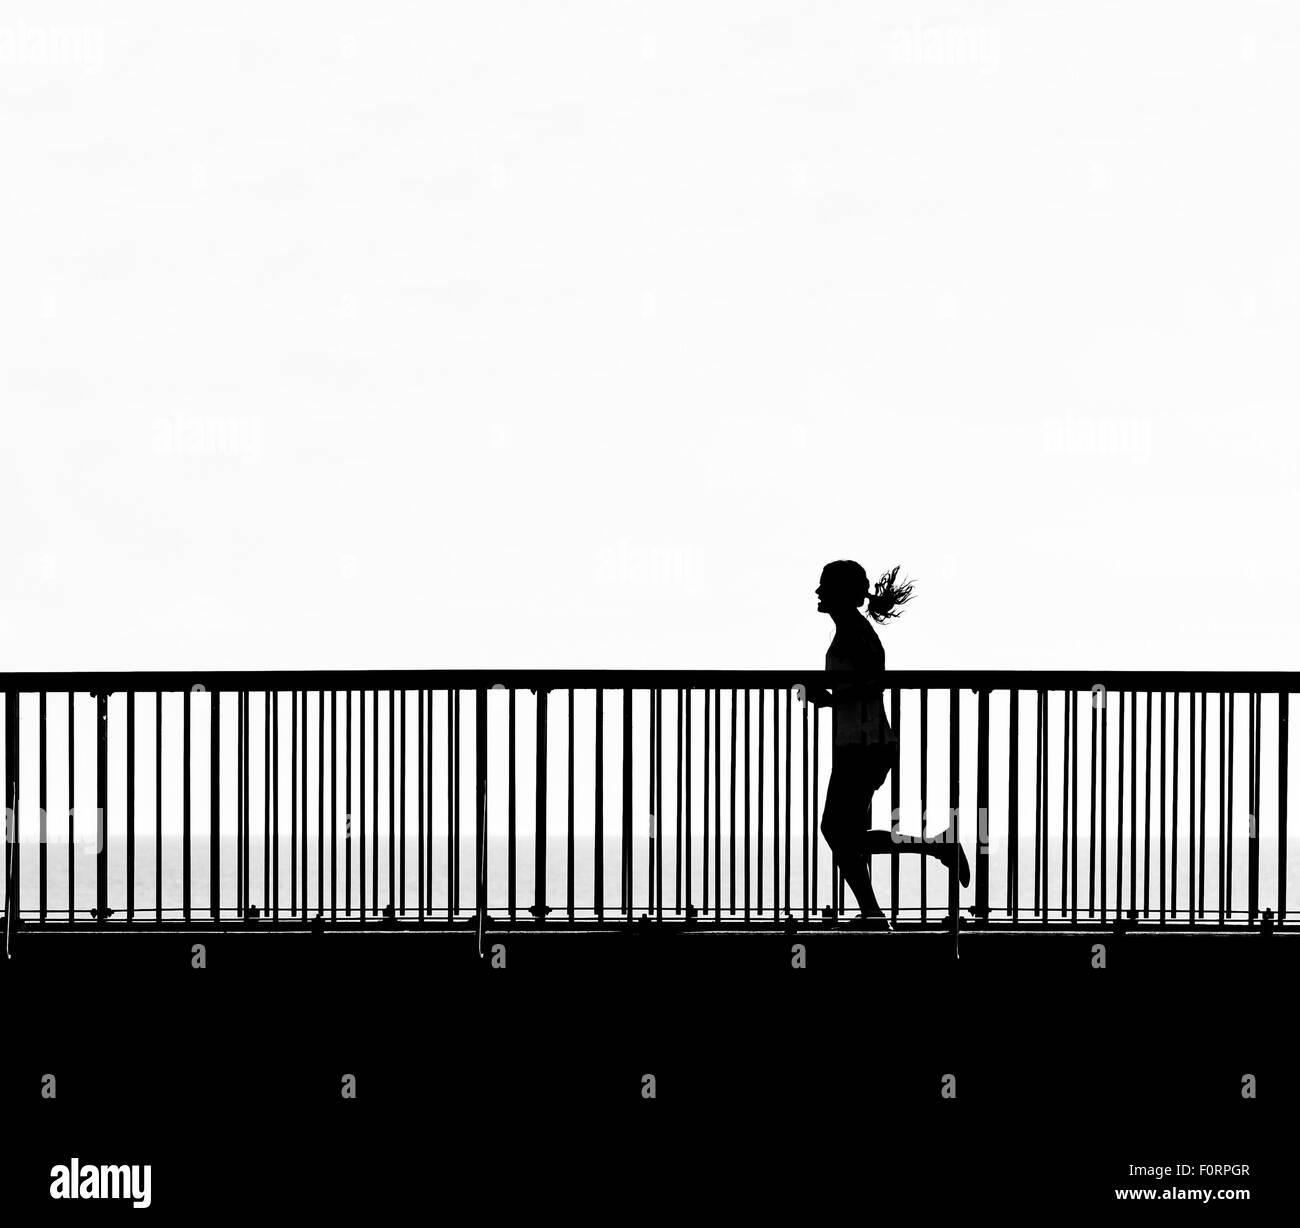 The silhouette of a woman jogging across the Louisa Gap Bridge in Broadstairs, Kent. - Stock Image